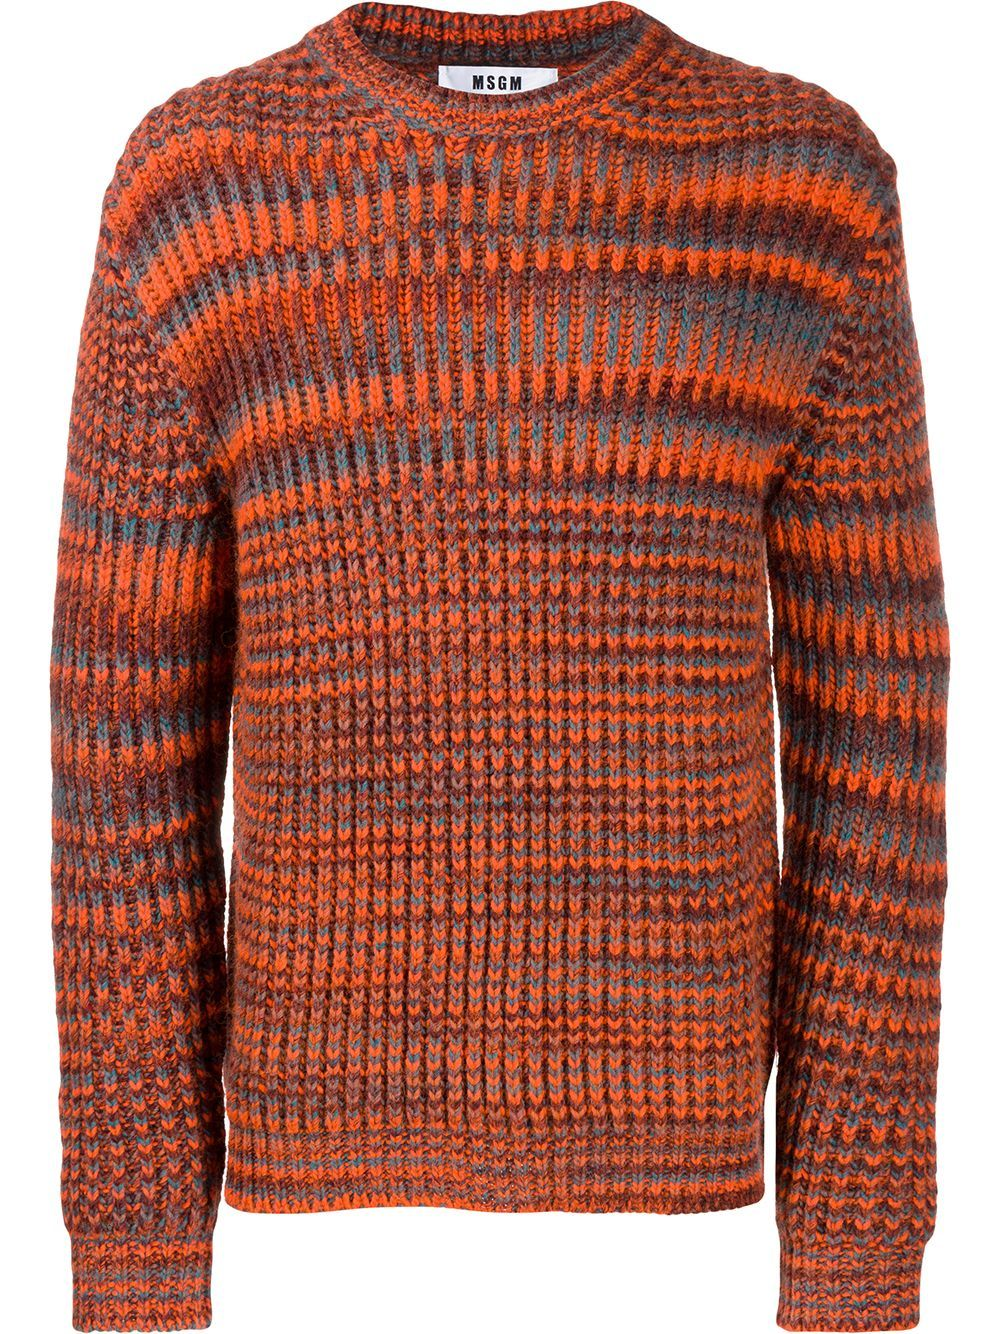 MSGM striped knit jumper - ORANGE